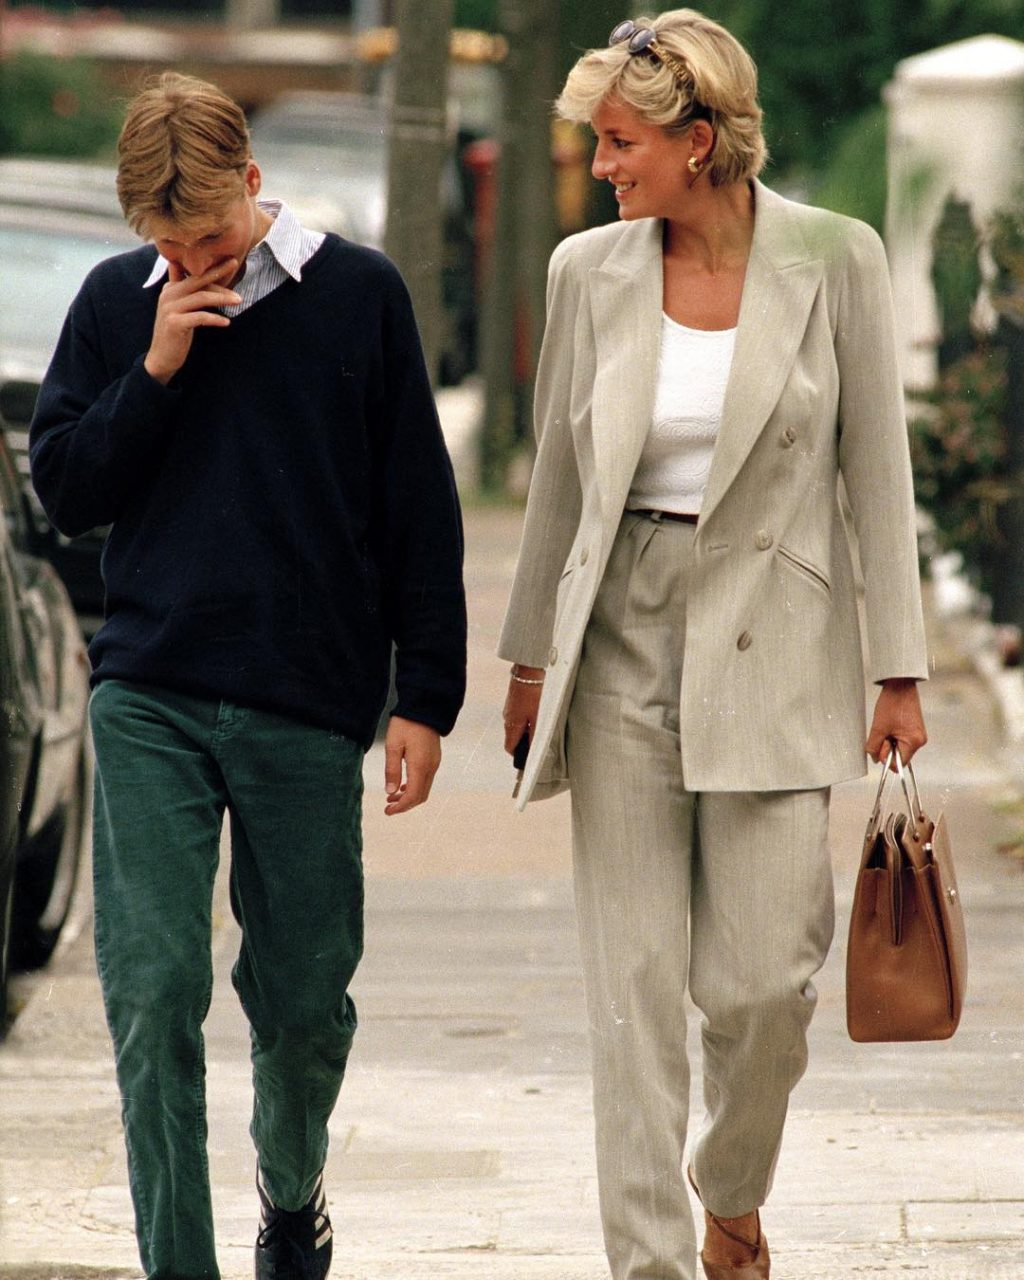 Let's Take a Minute to Dissect Princess Diana's Off-Duty Style, Shall We?